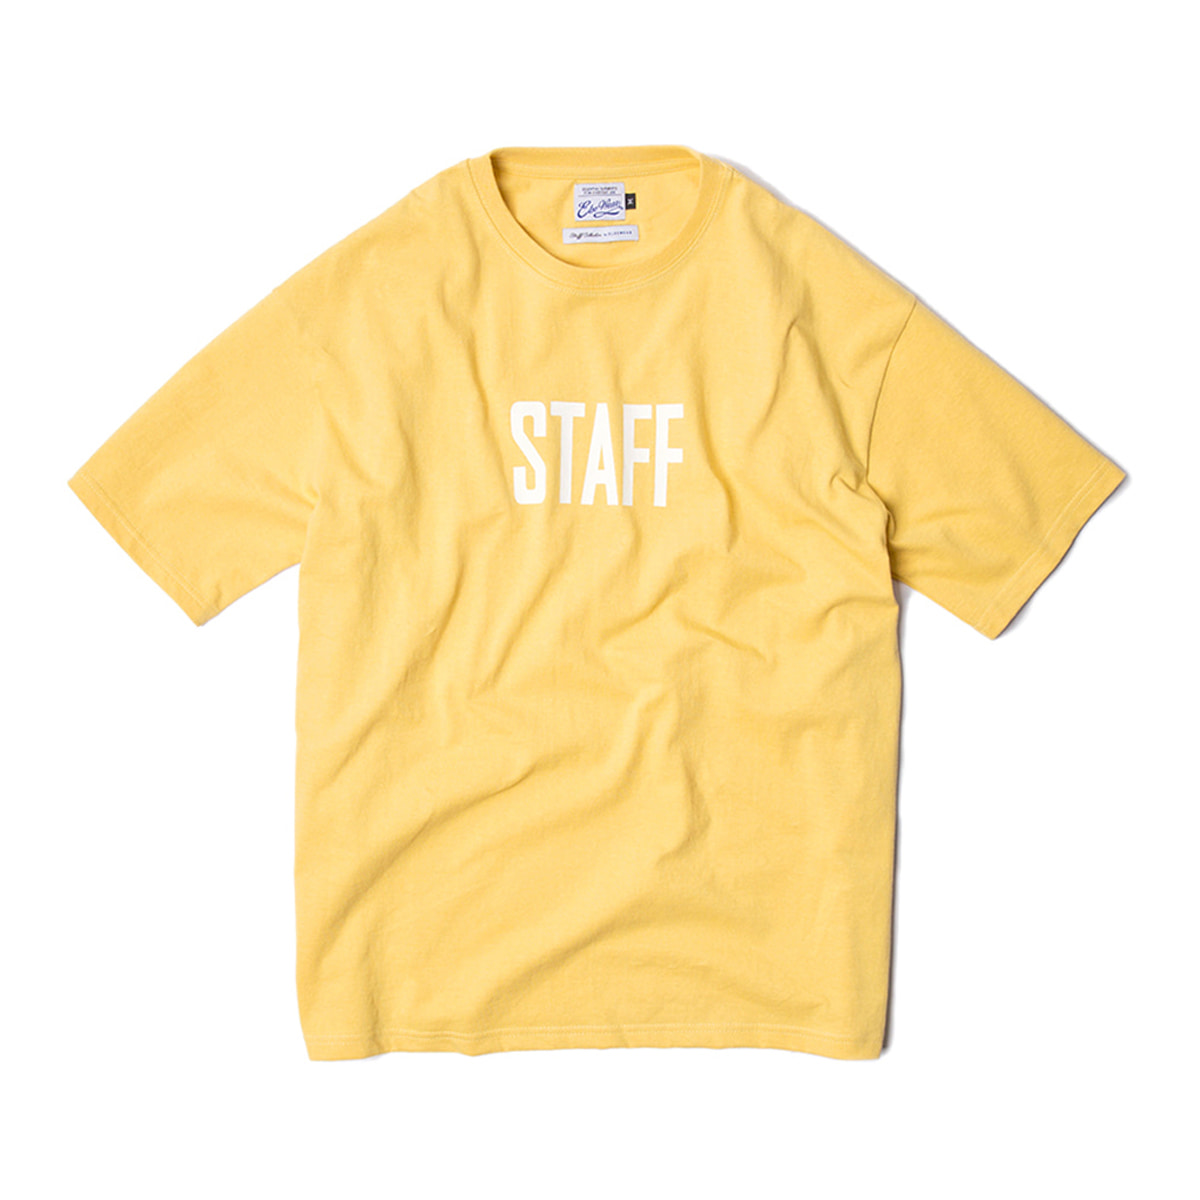 [ELSEWEAR] ELSEWEAR STAFF COLLECTION SS TEE 'LEMON'